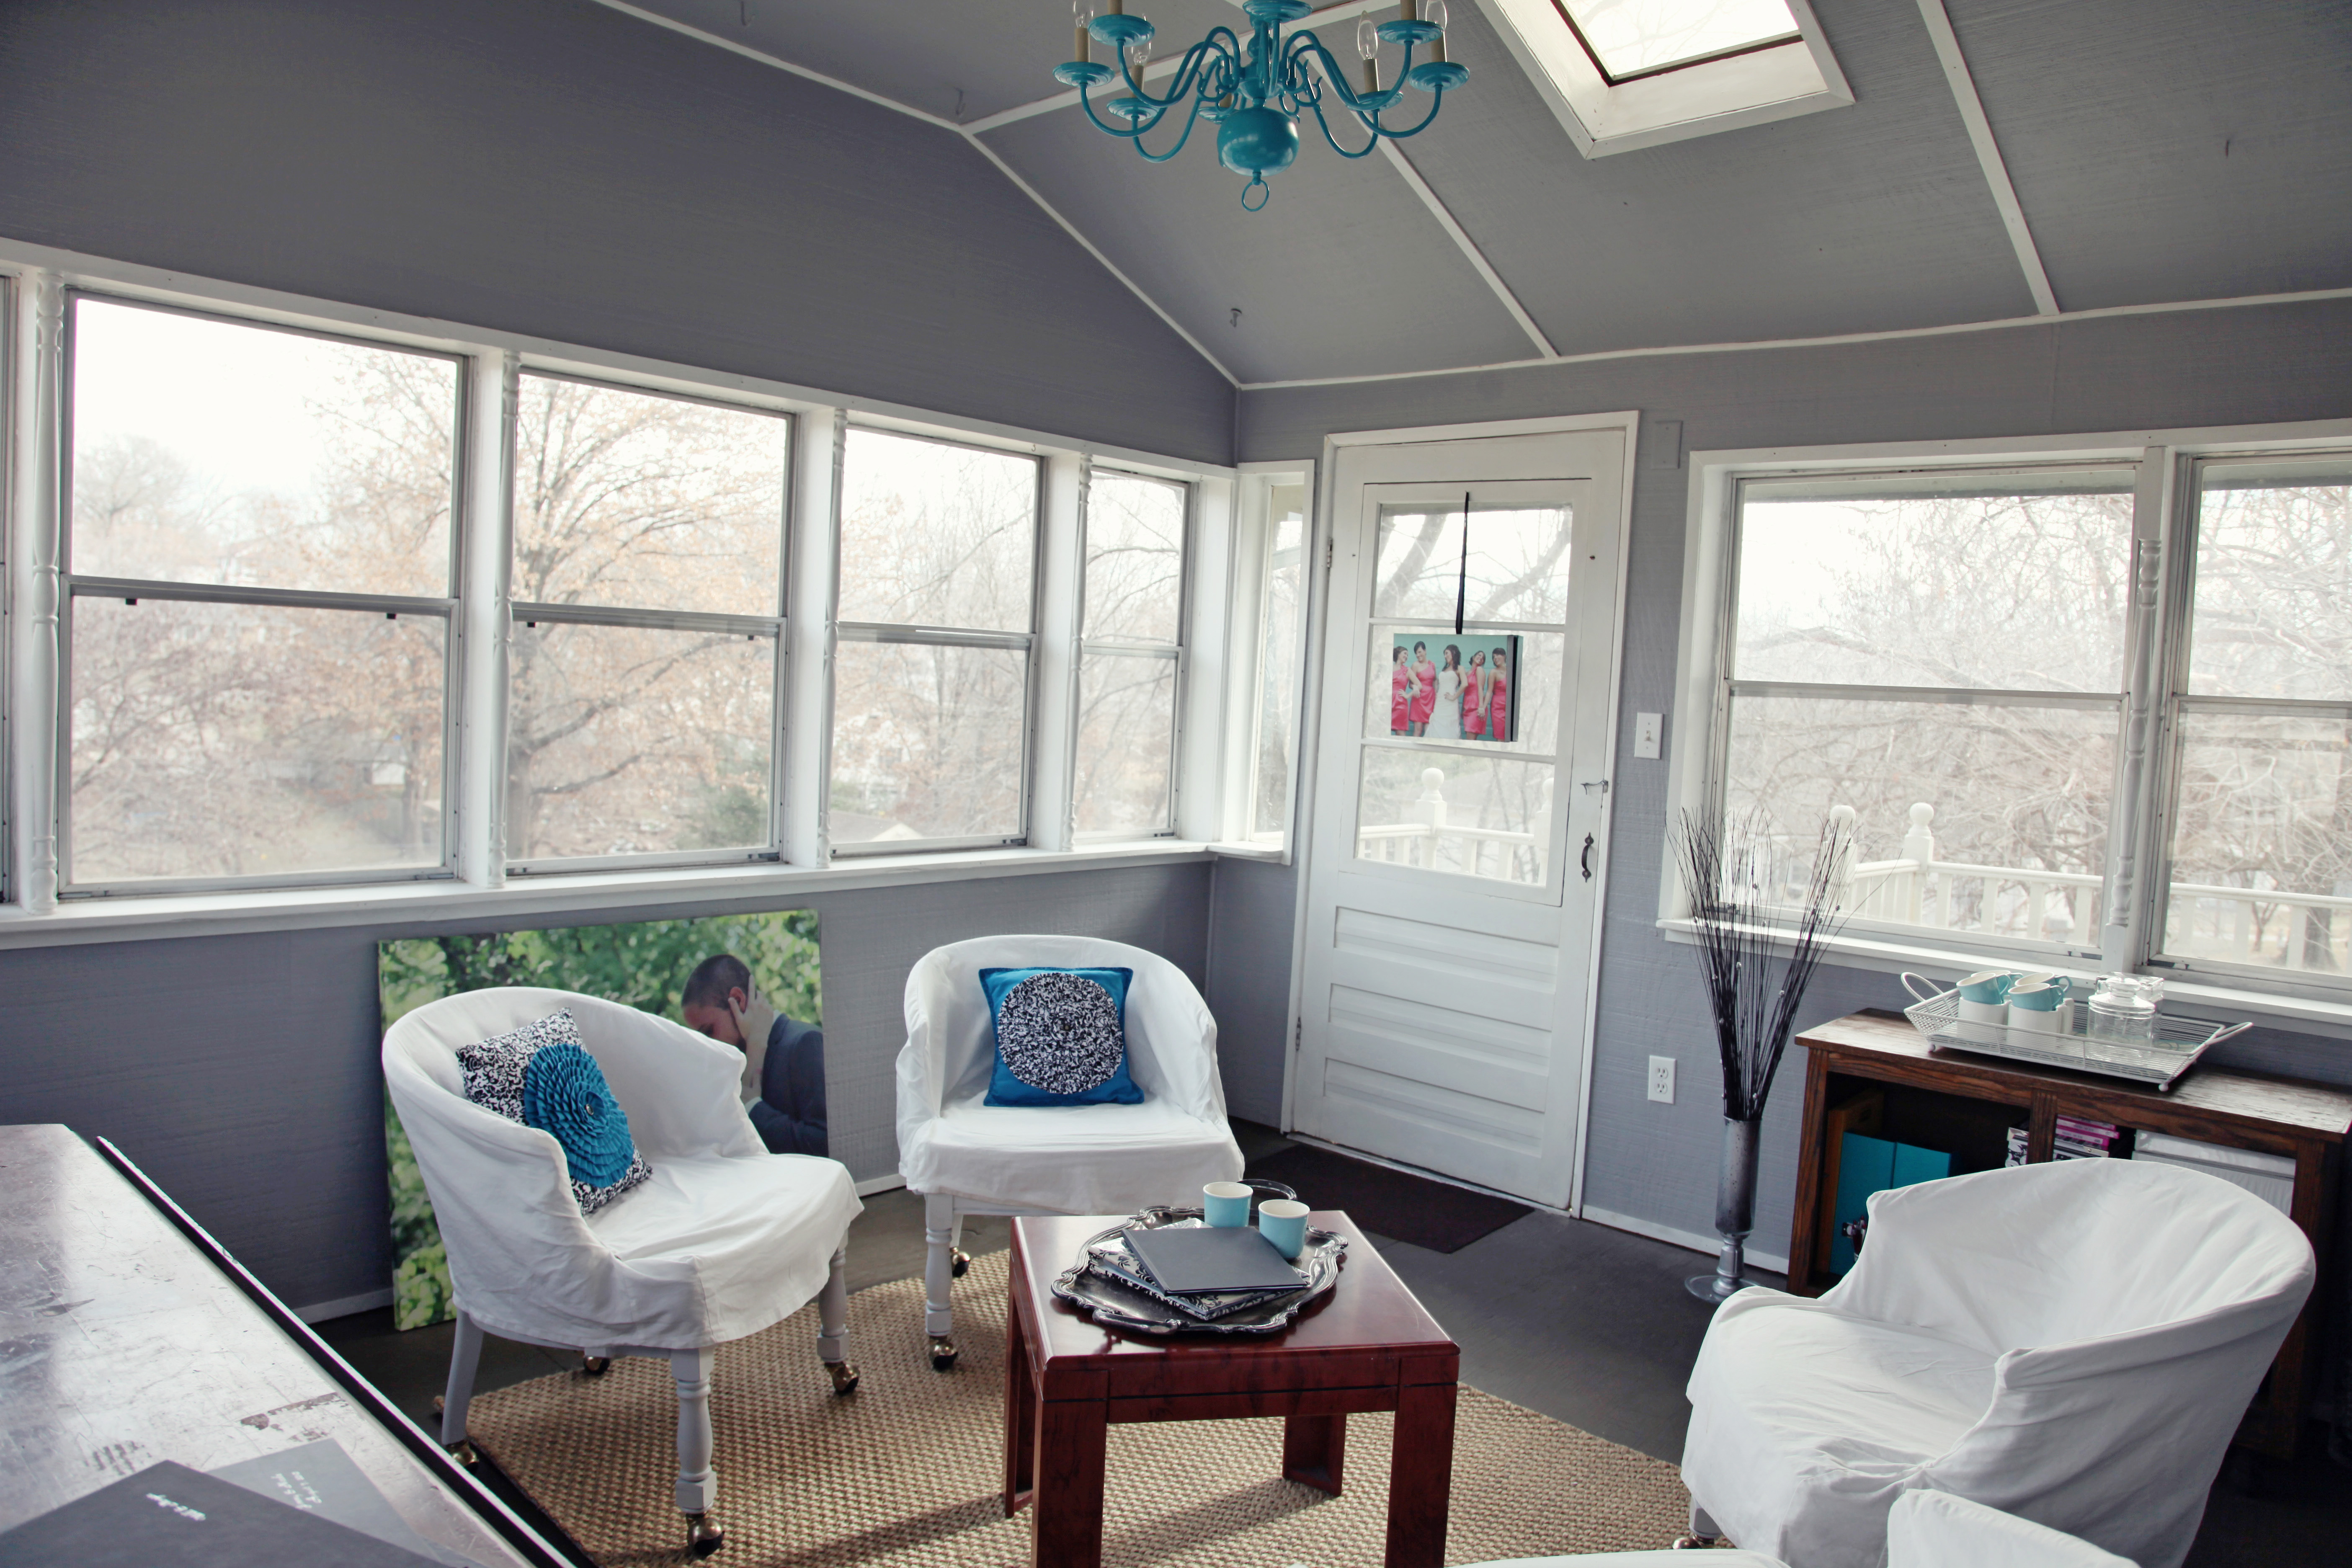 Grey, turquoise and white sun room turned into a home office for Sarah & Ginger Photography, Kansas City, MO